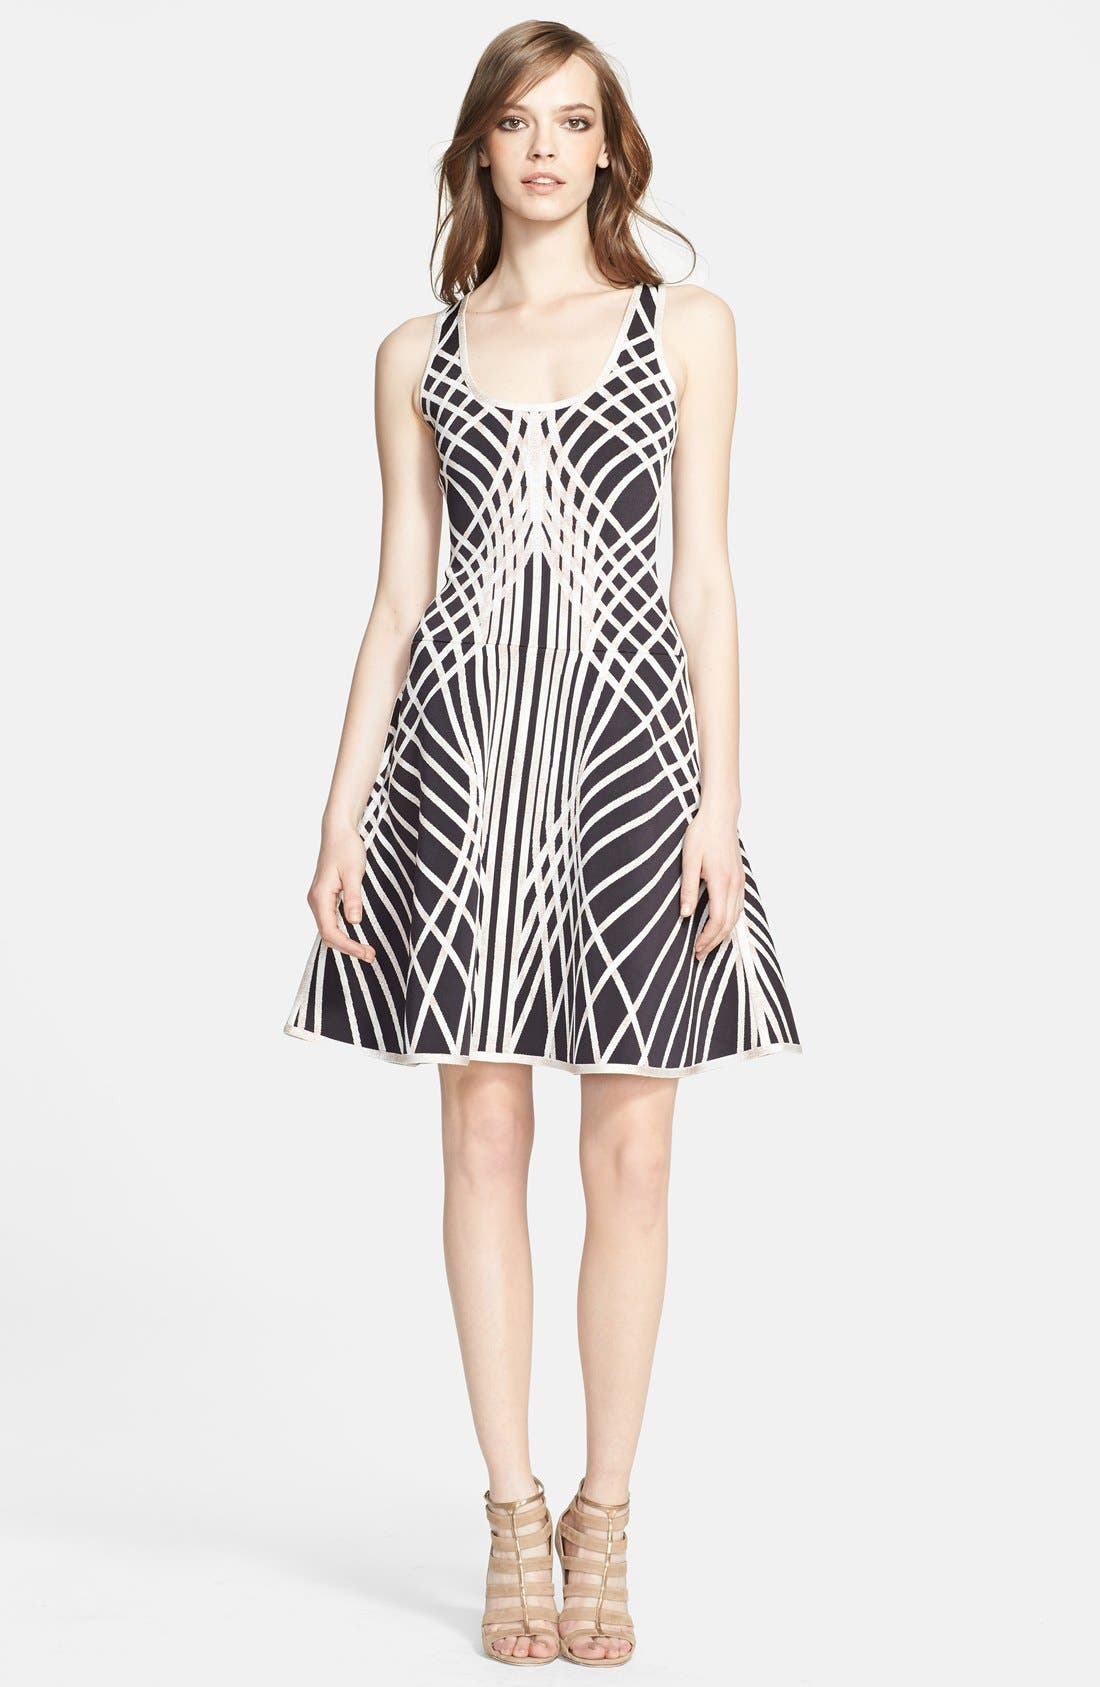 Main Image - Herve Leger Contrast Graphic Pattern Fit & Flare Dress